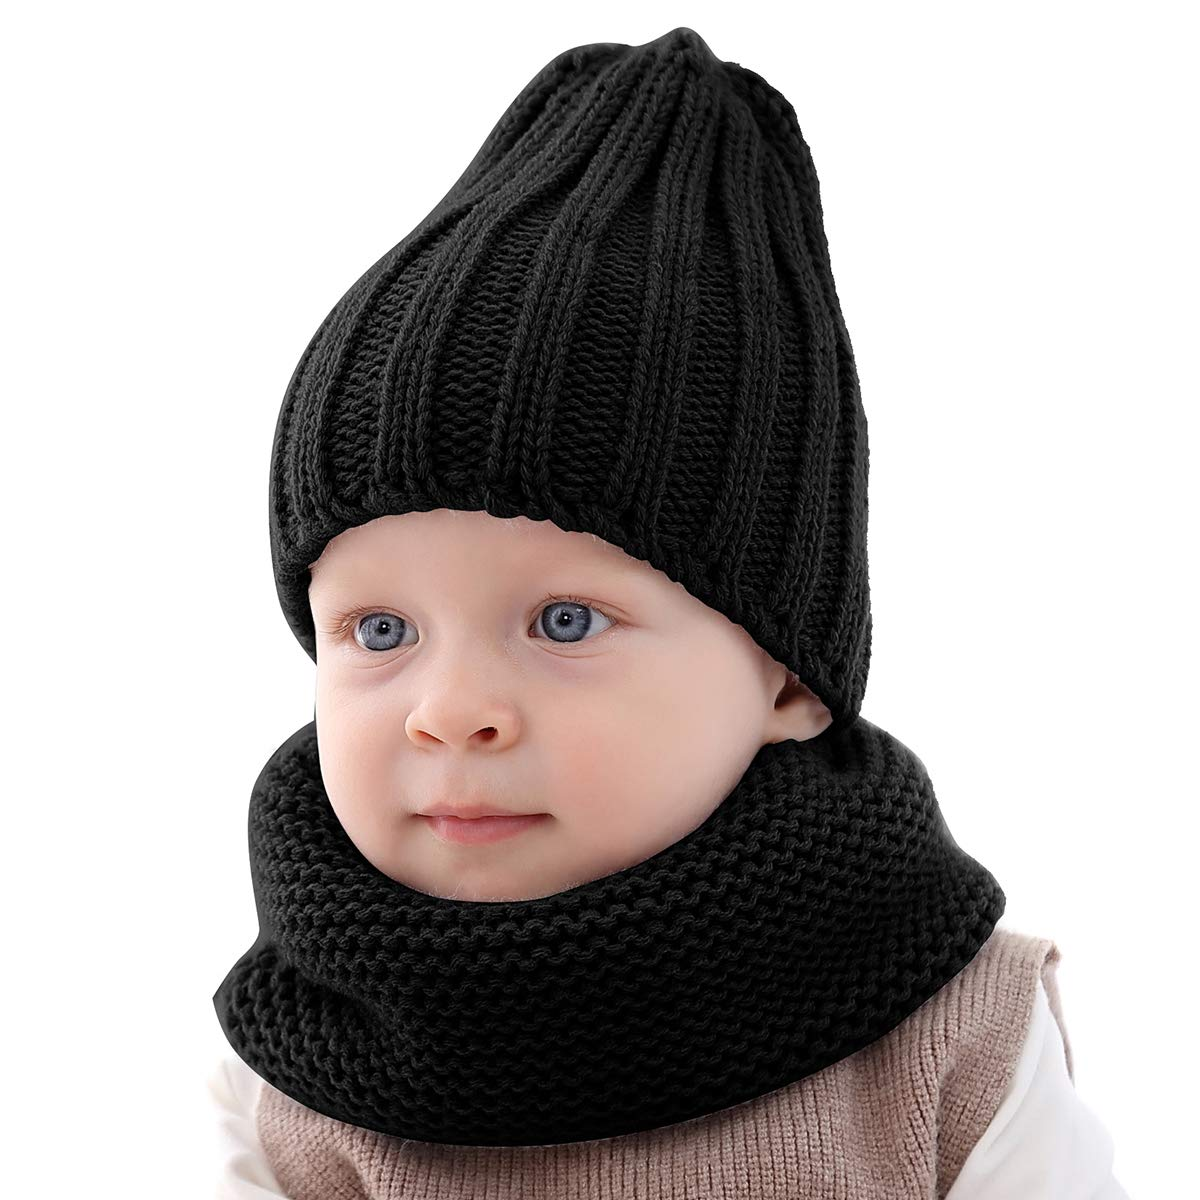 Yinuoday Toddler Baby Winter Warm Knitted Hat Scarf Set Soft Beanie Cap Circle Scarf for Baby Boys Girls